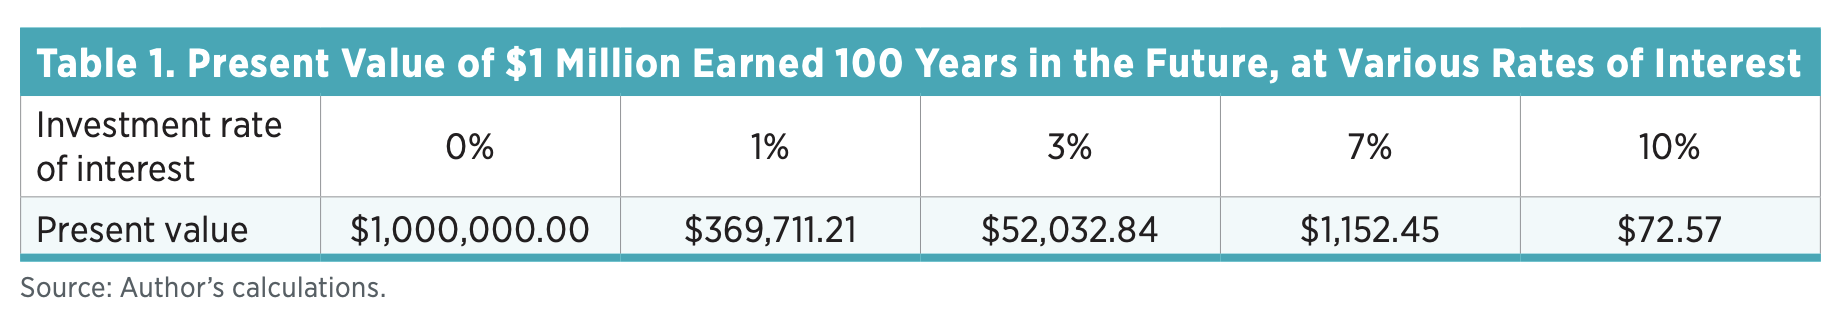 Table 1. Present Value of $1 Million Earned 100 Years in the Future, at Various Rates of Interest